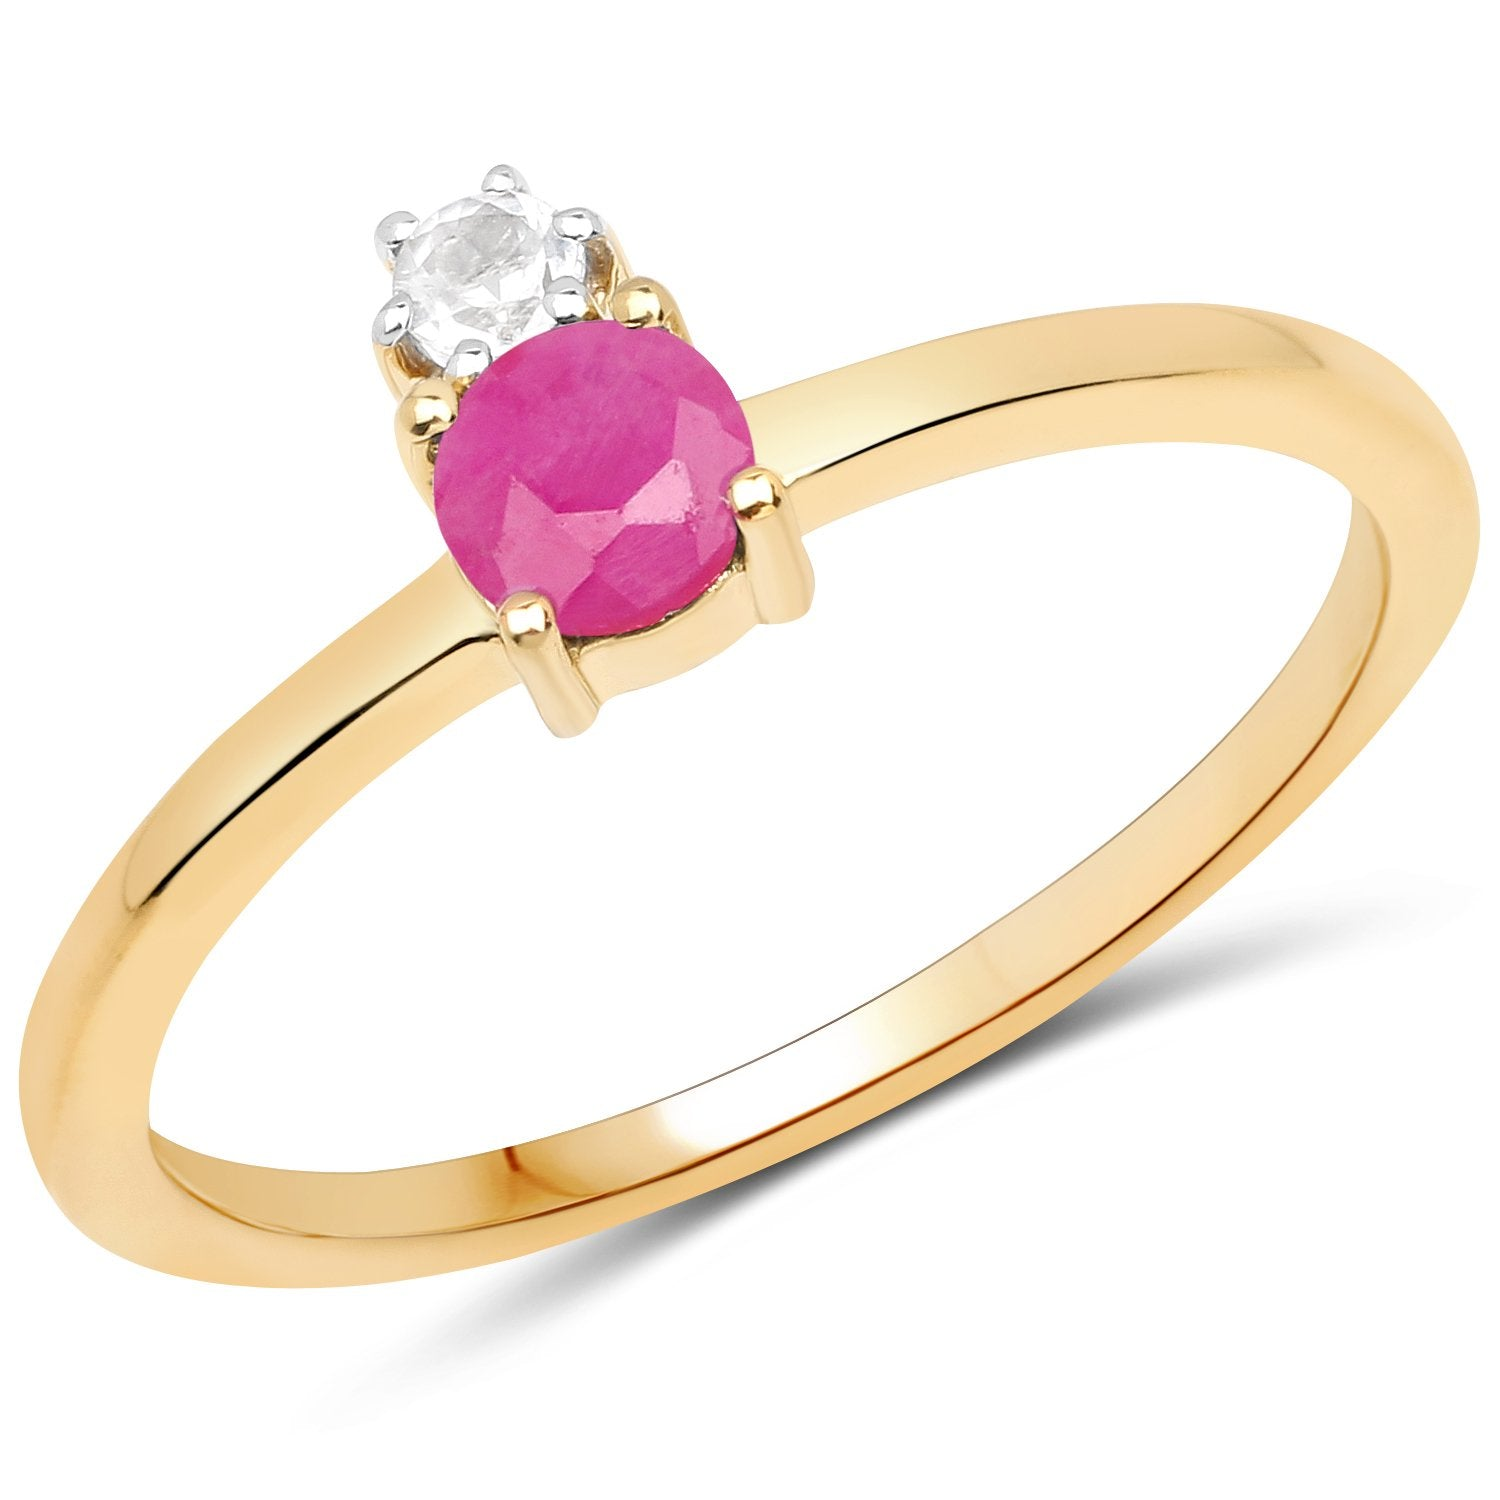 LoveHuang 0.35 Carats Genuine Ruby and White Topaz Dot Ring Solid .925 Sterling Silver With 18KT Yellow Gold Plating